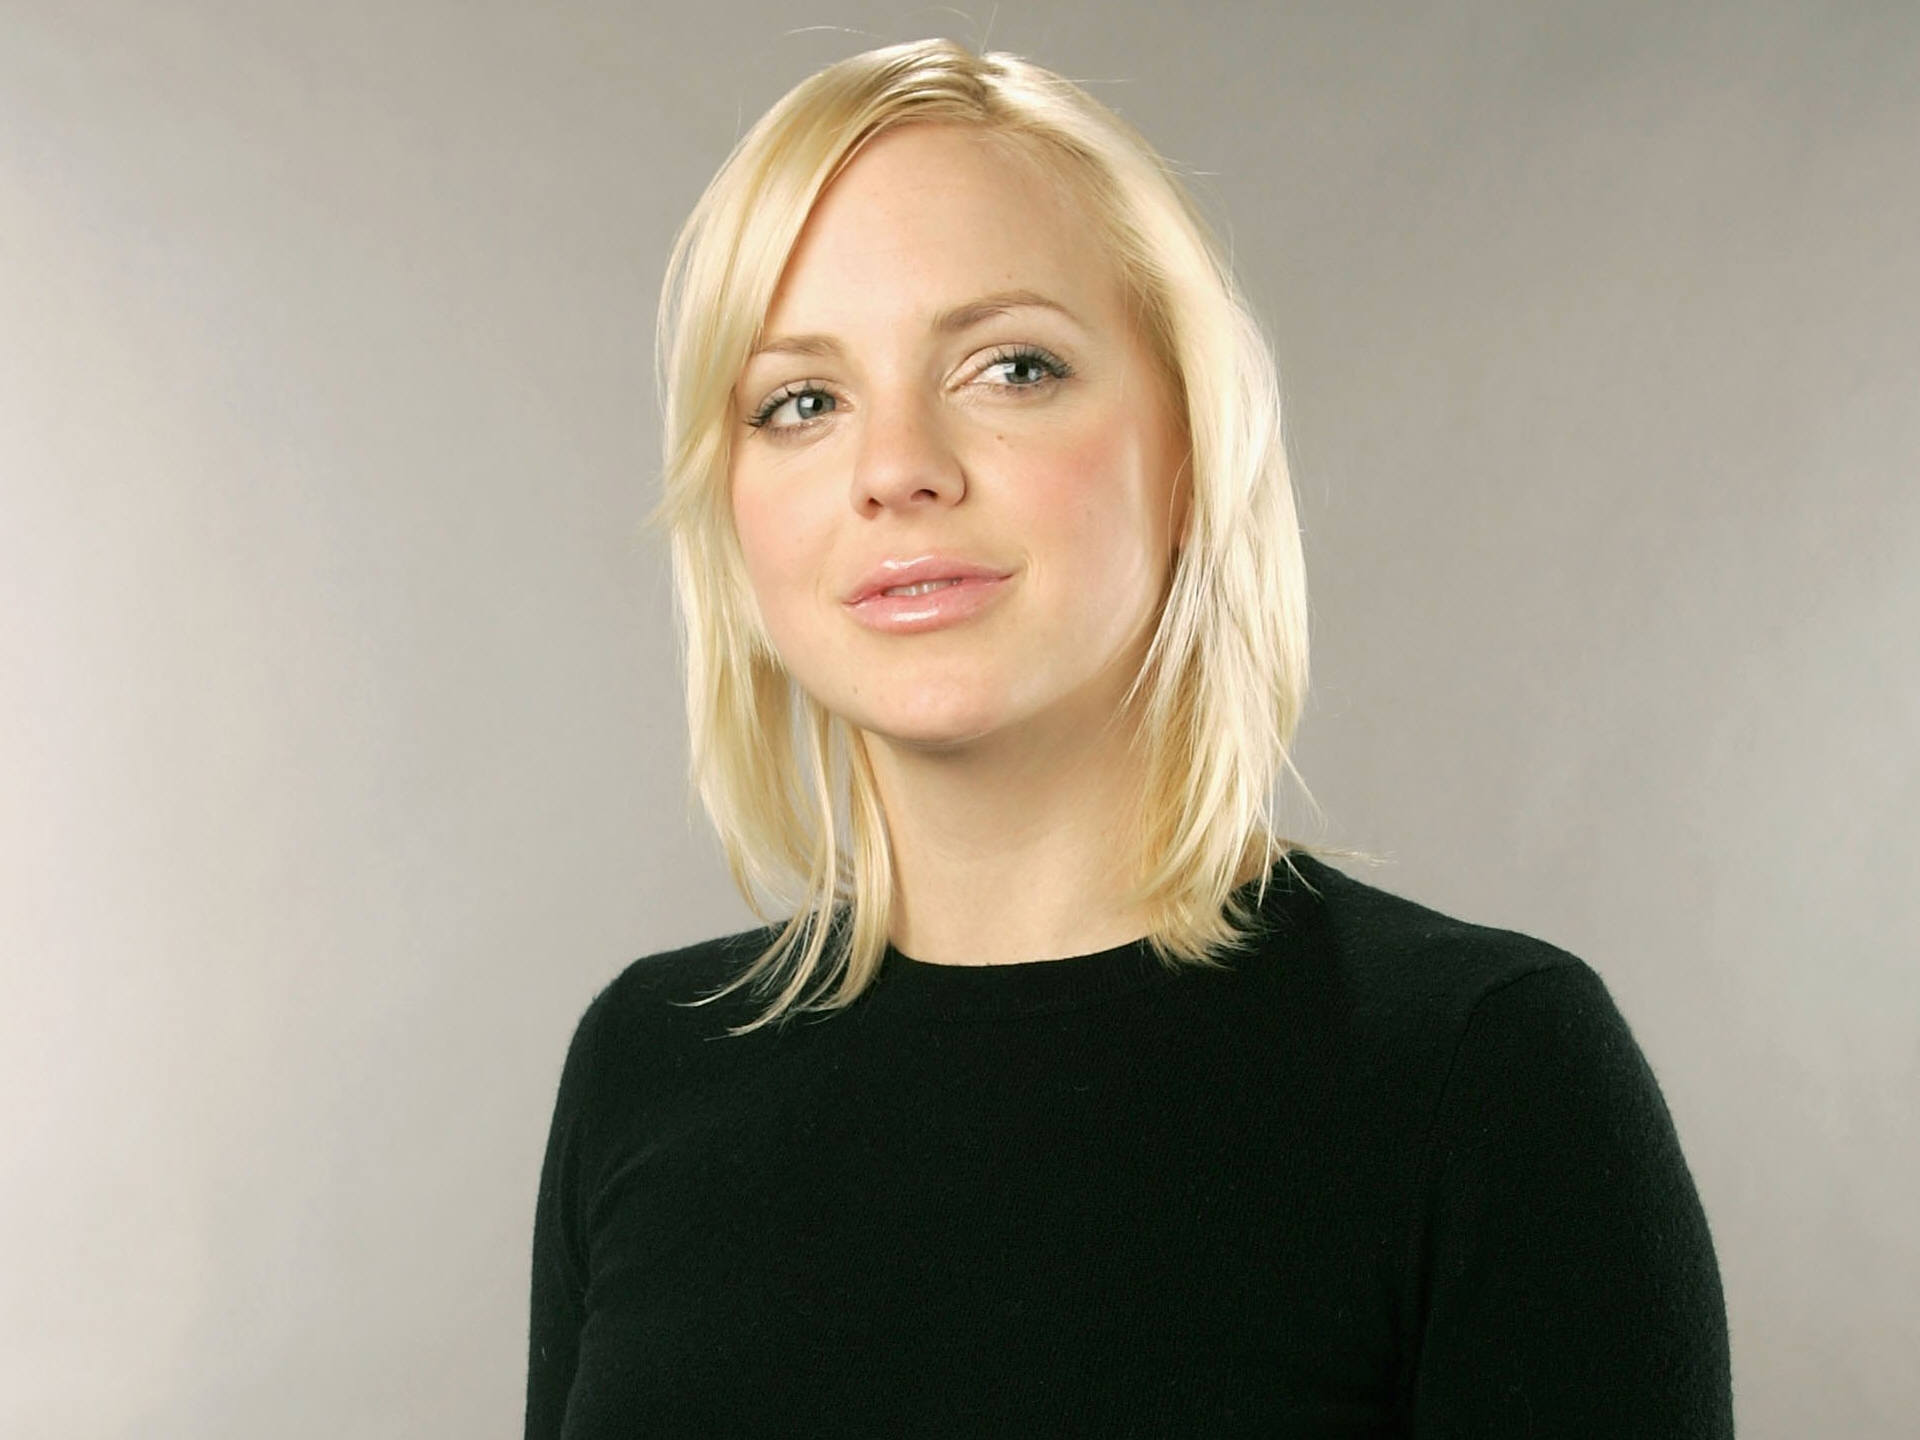 Pictures Of Anna Faris